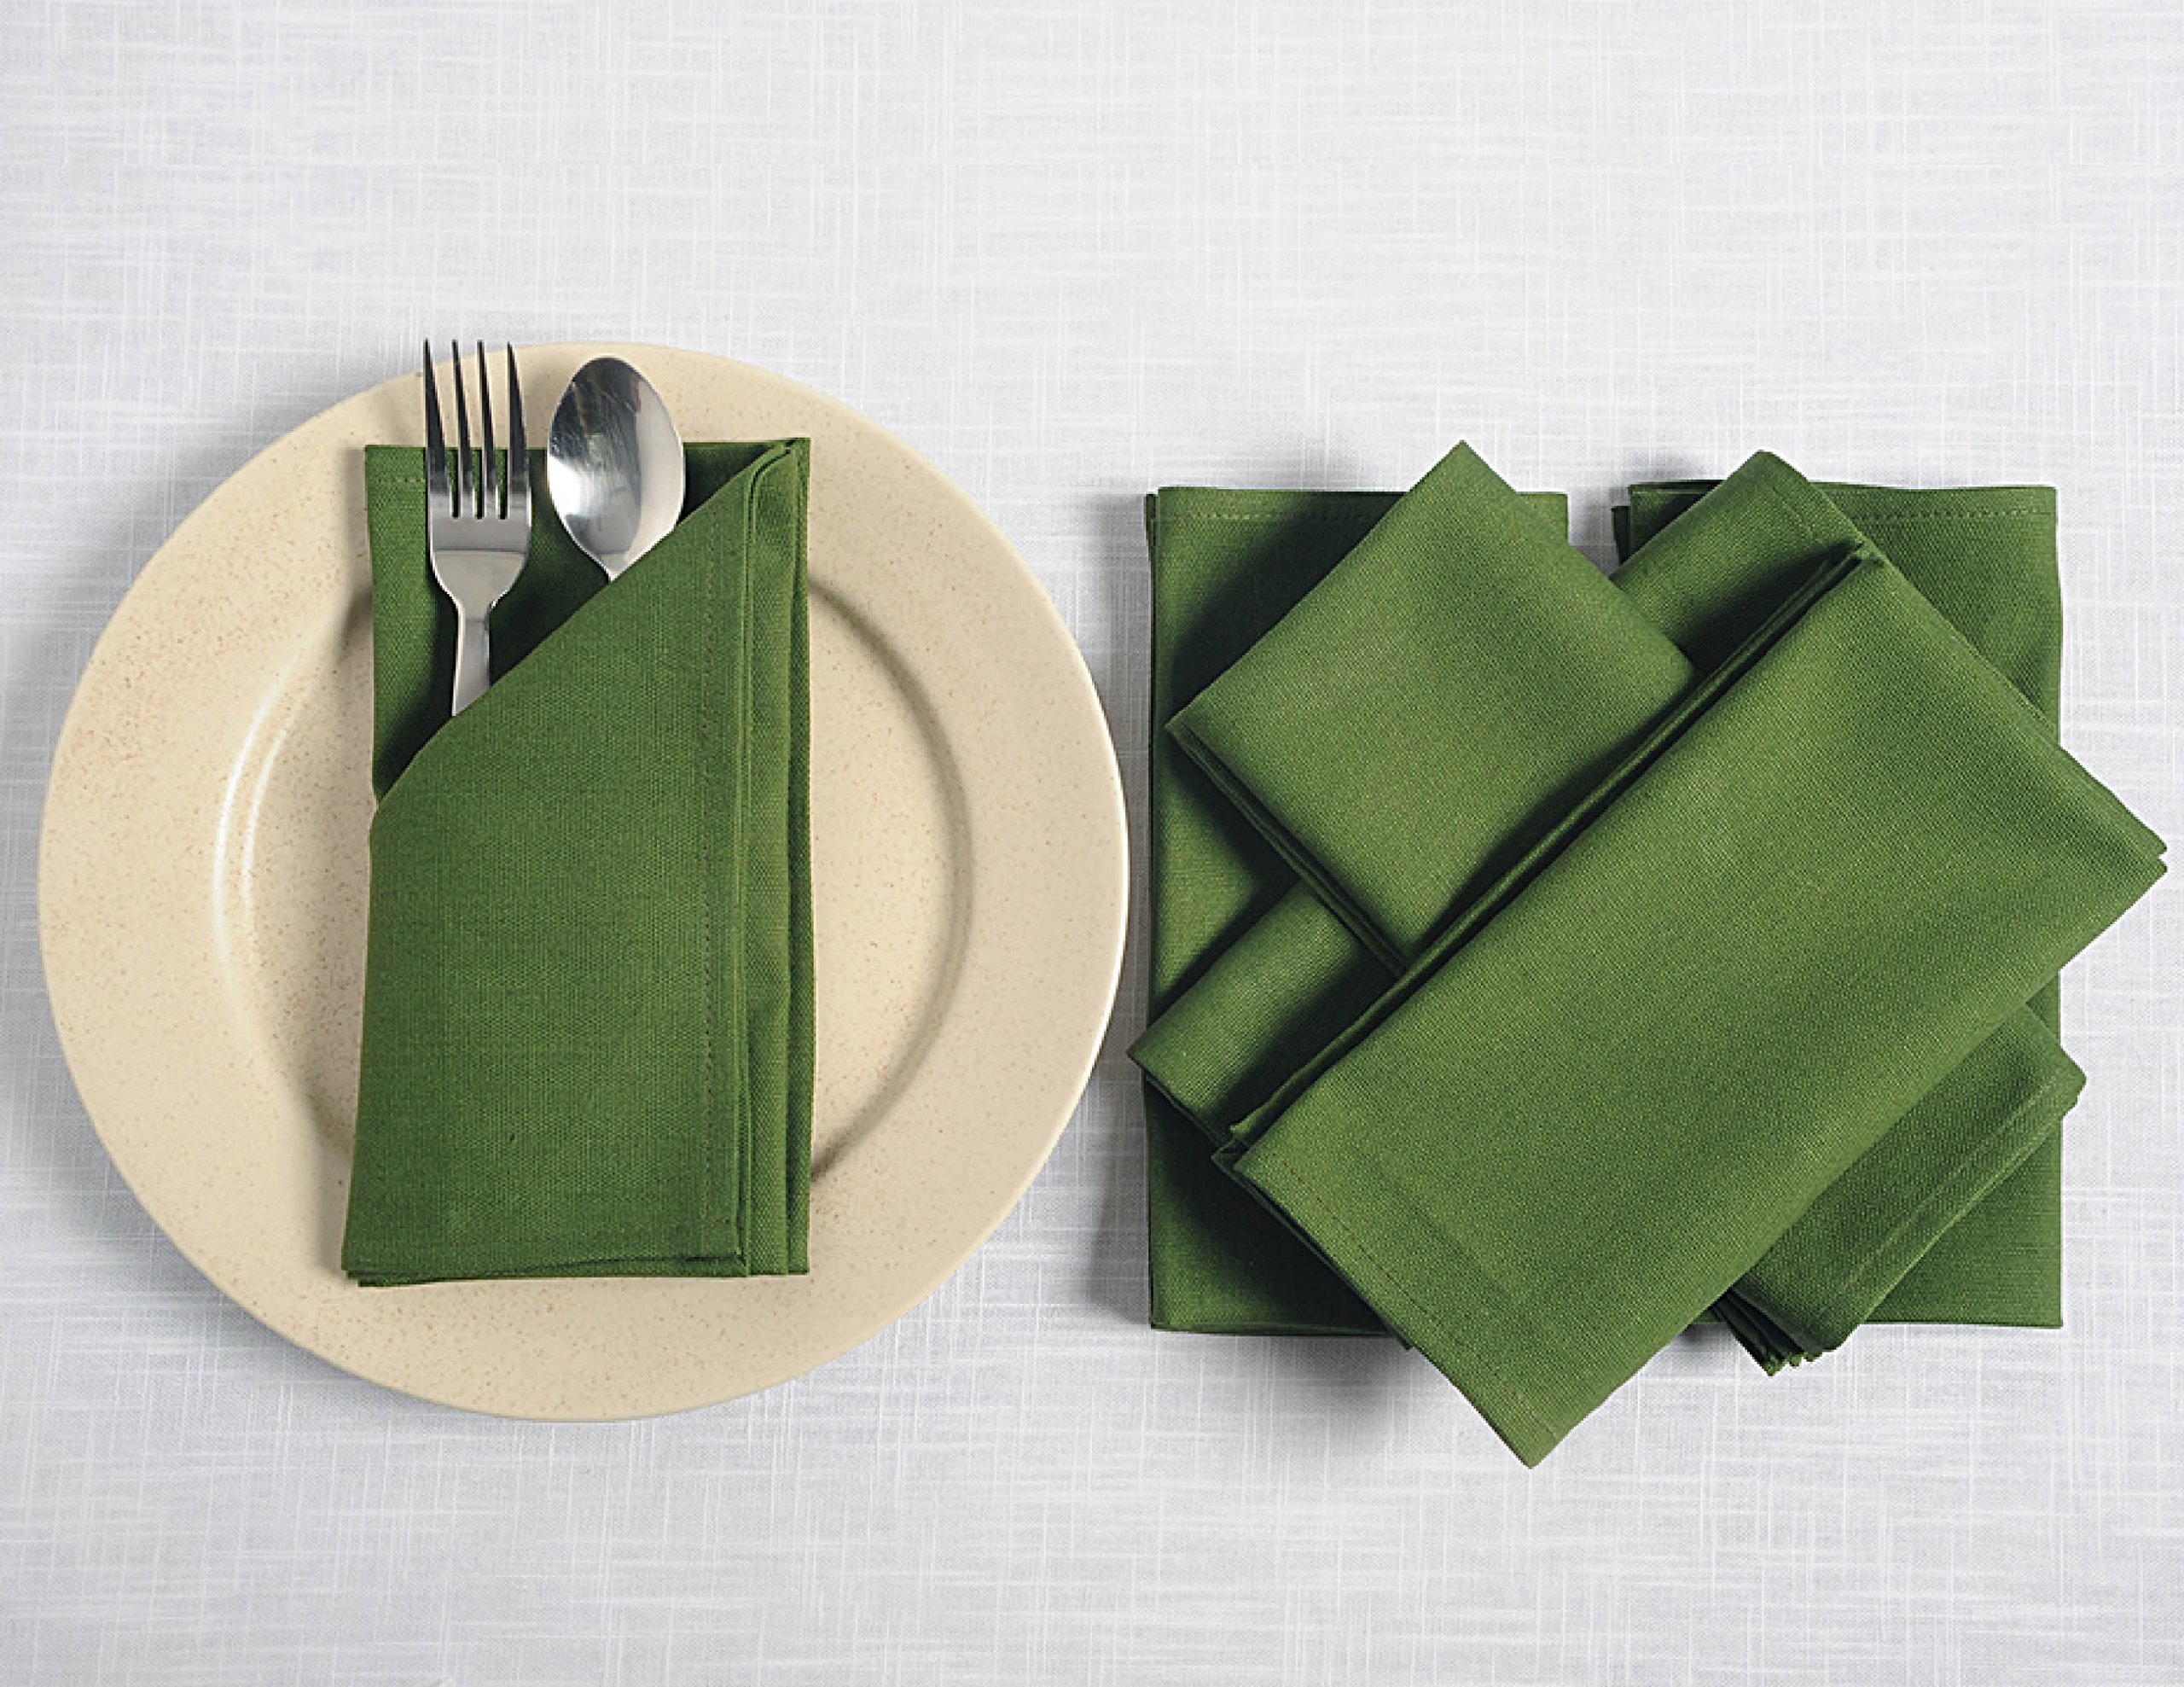 ShalinIndia Cloth Cocktail Napkins Set - 6'' x 6'' - Cotton - Olive - Set of 100 - Perfect for Weddings & Parties